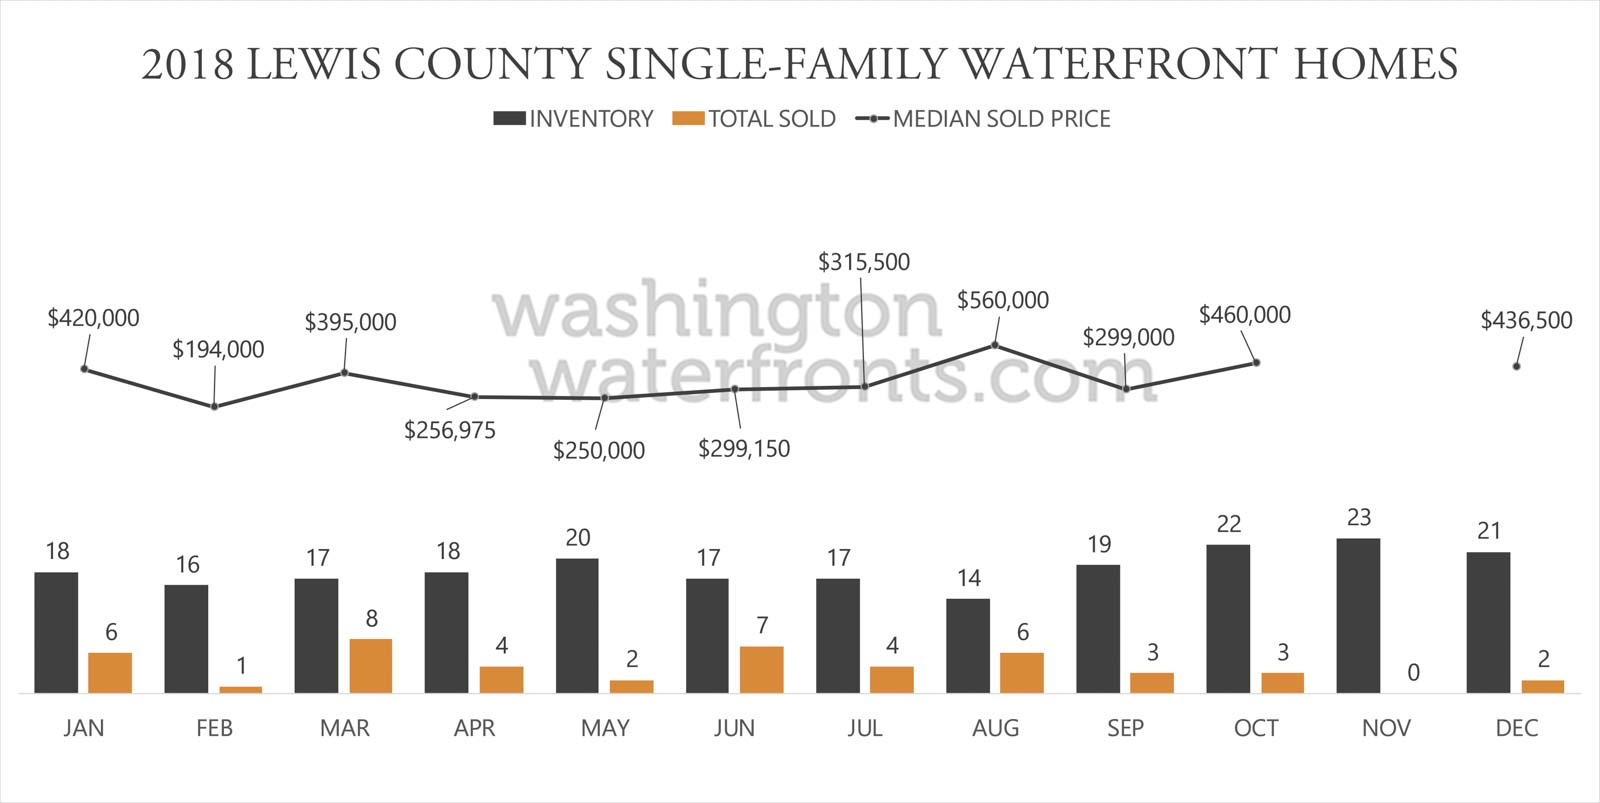 Lewis County Waterfront Inventory